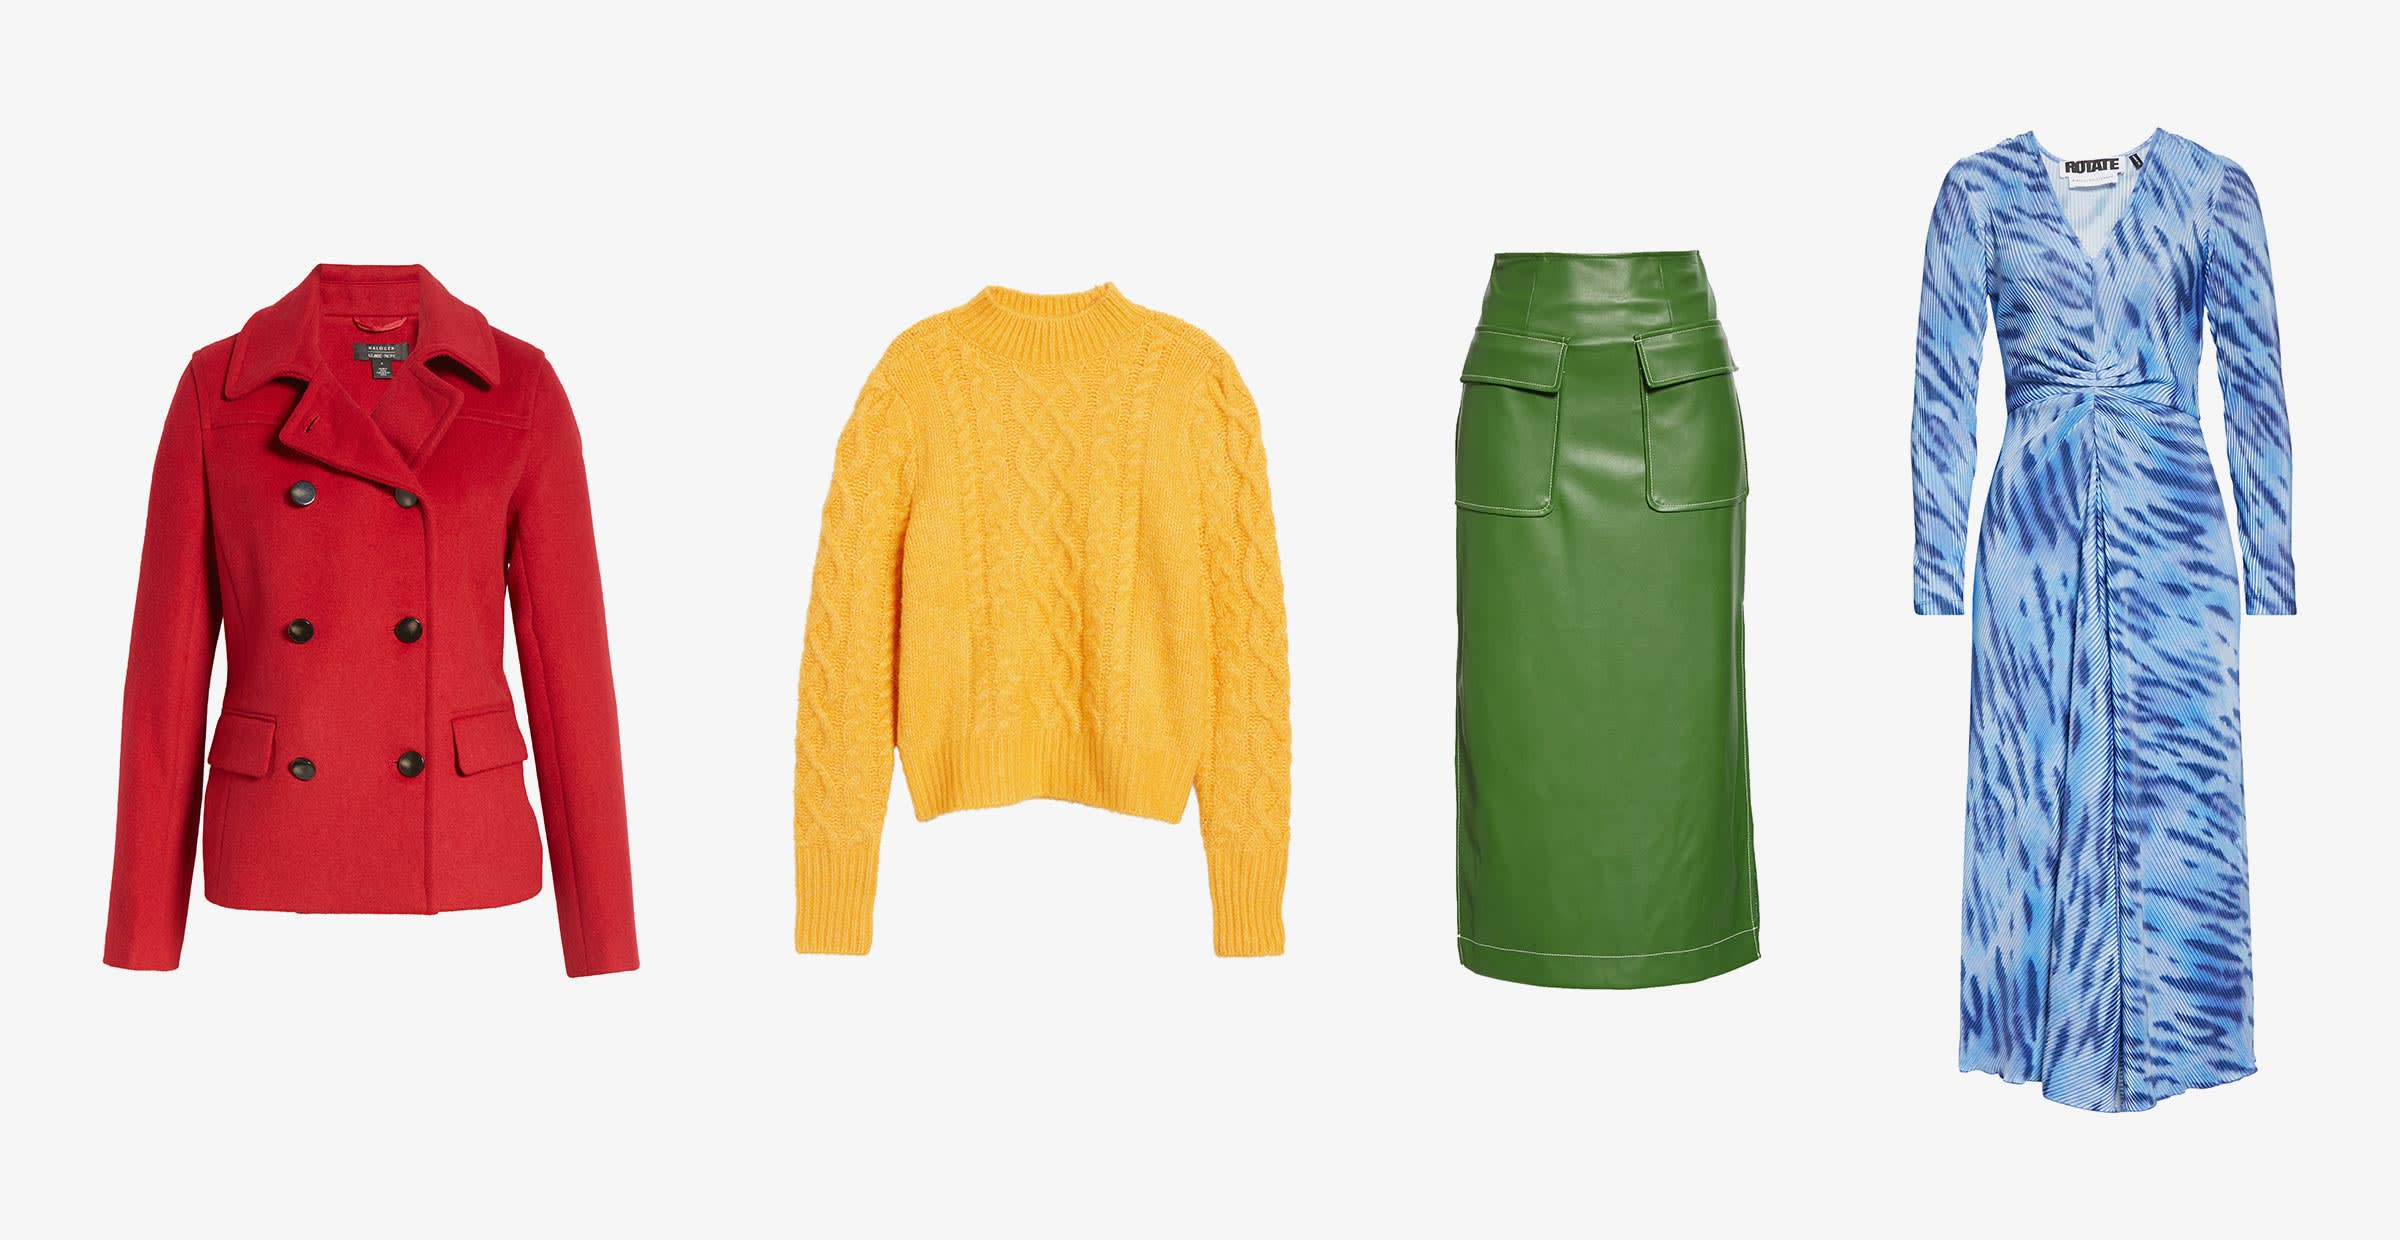 red womens jacket, yellow womens sweater, green leather skirt, blue dress